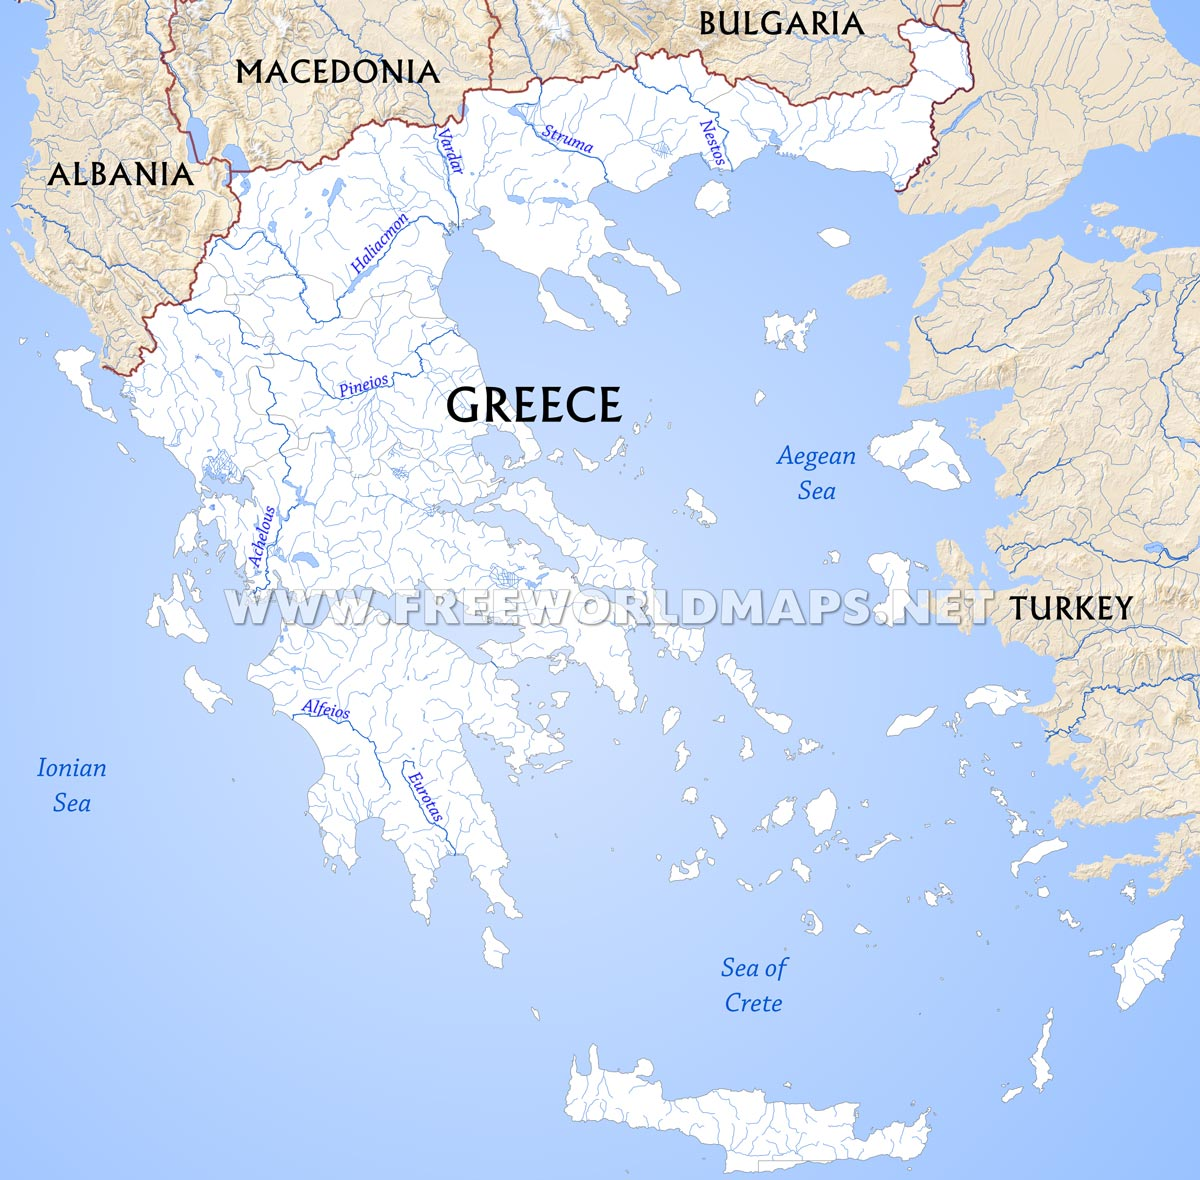 Greece physical map greek islands map showing the major islands and peninsulas of greece greece rivers gumiabroncs